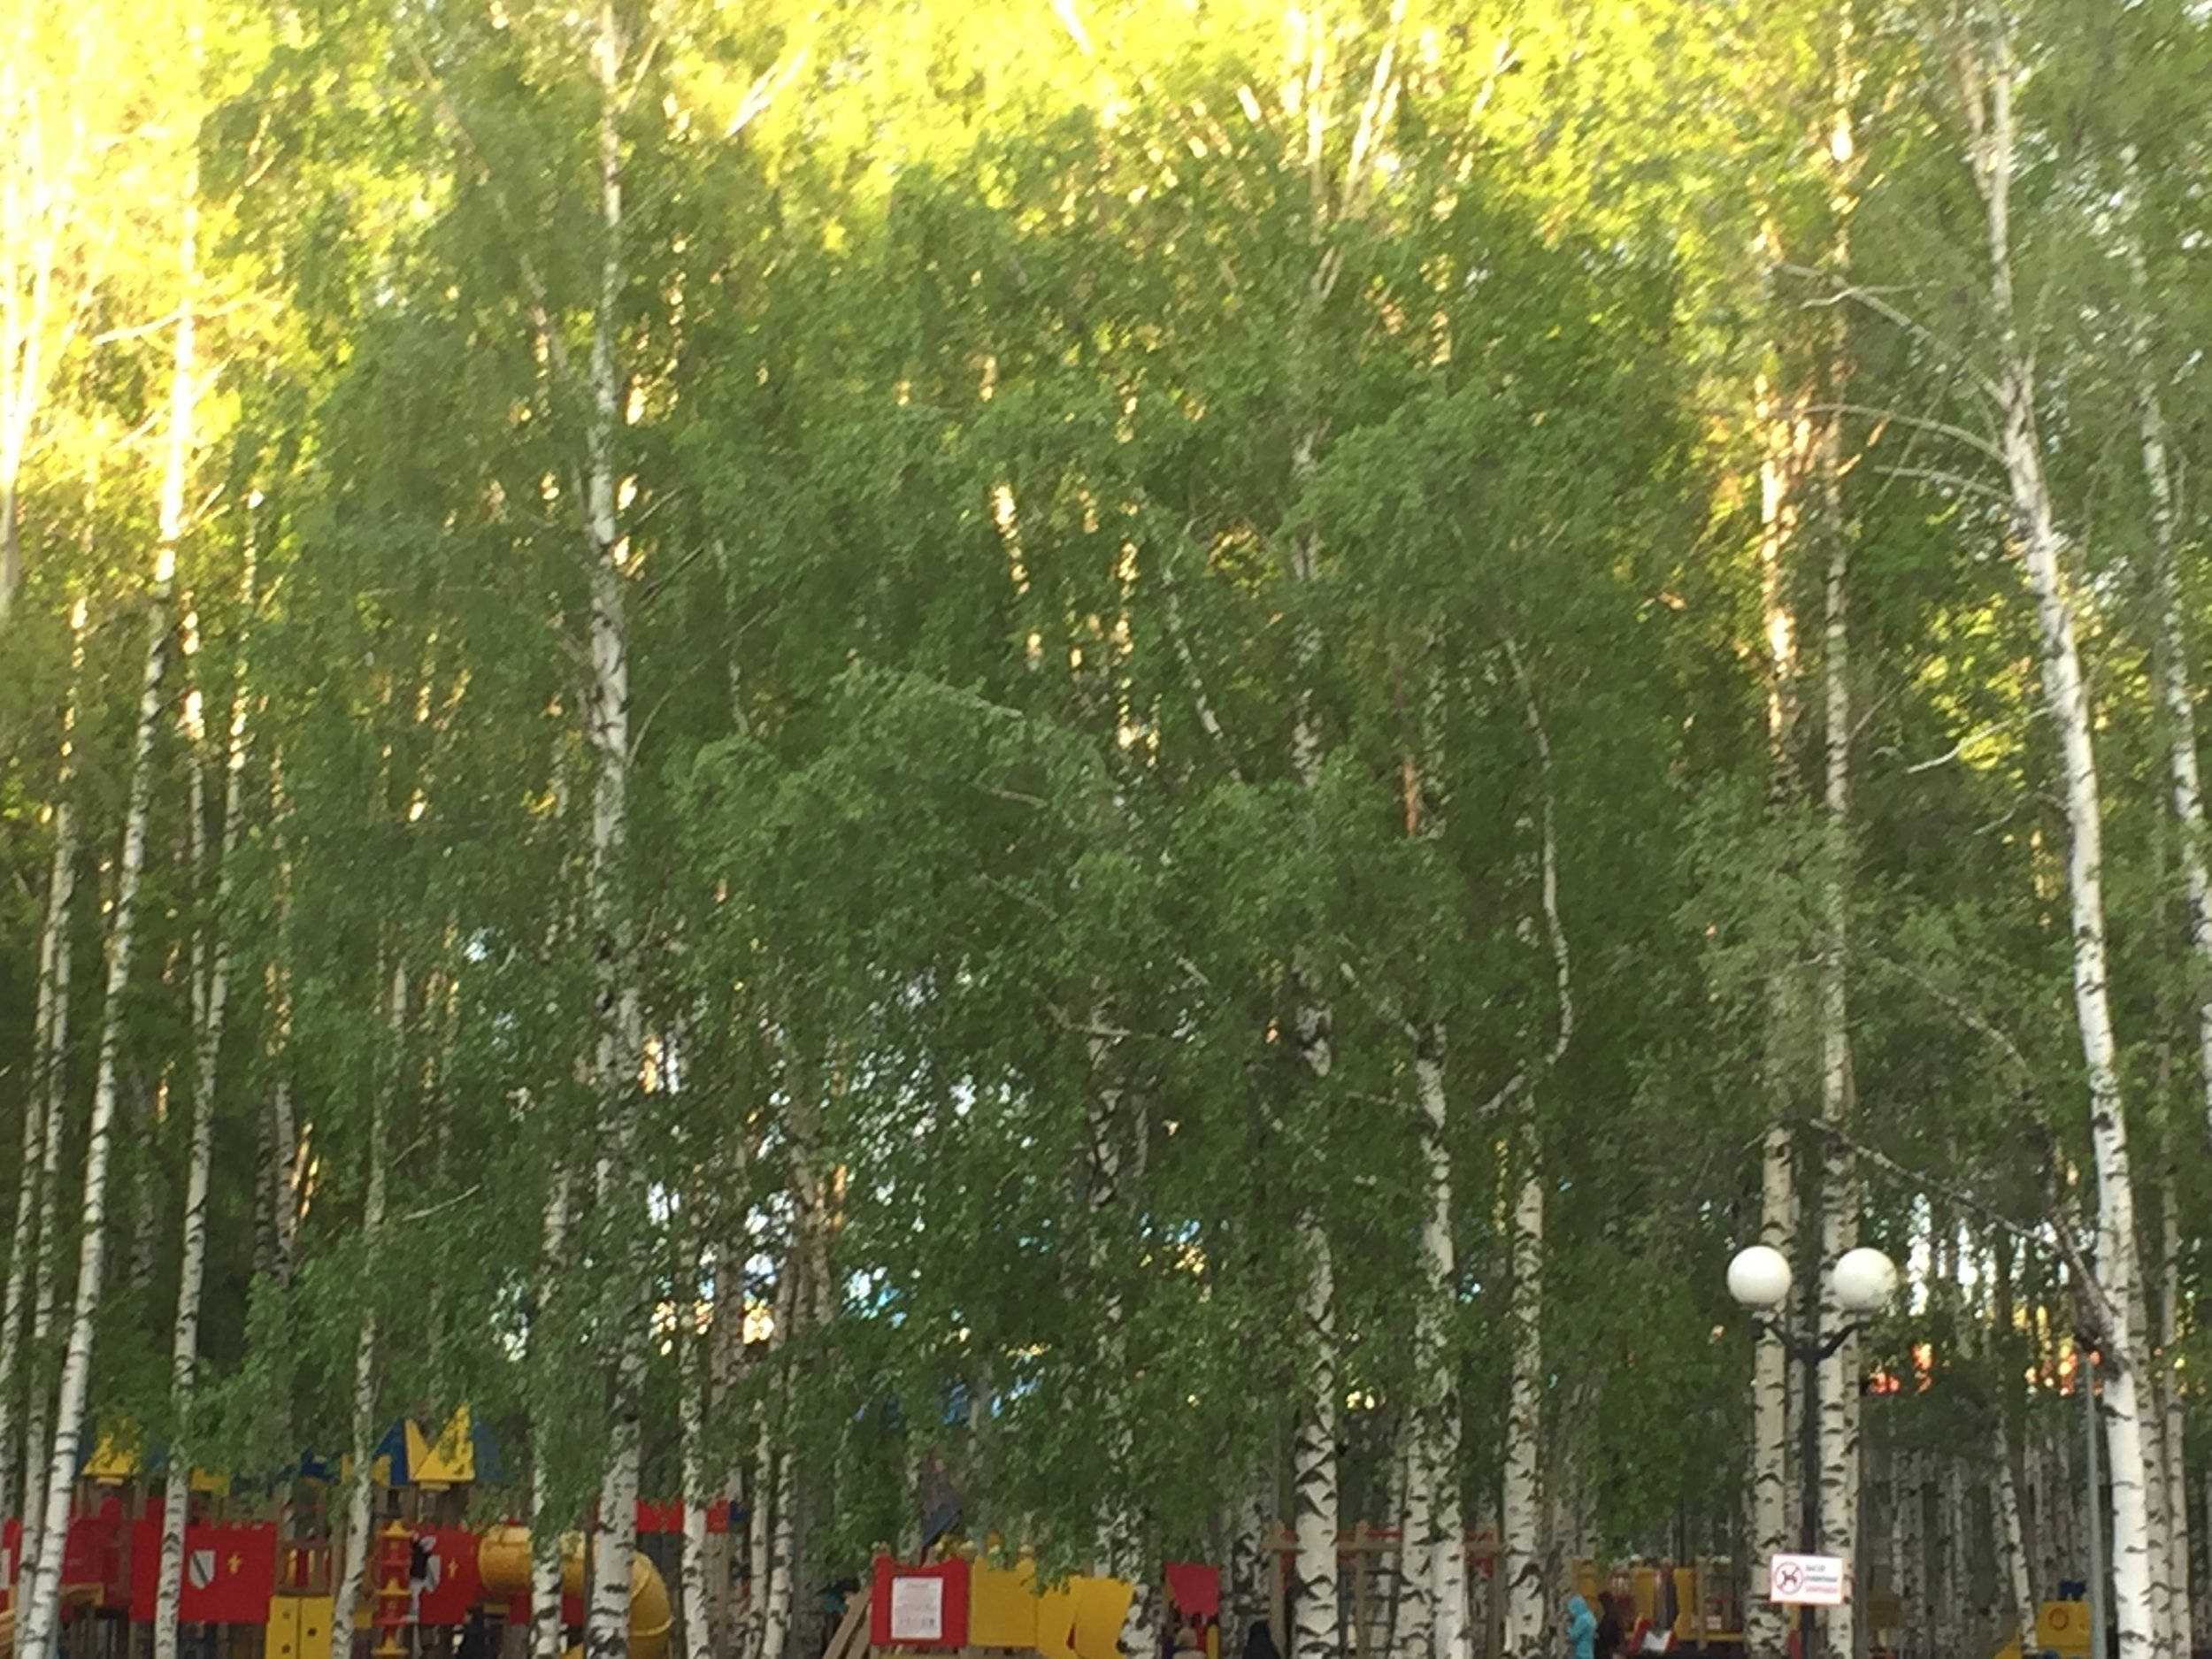 This beautiful birch park is right in town. Some interesting monuments to history here.